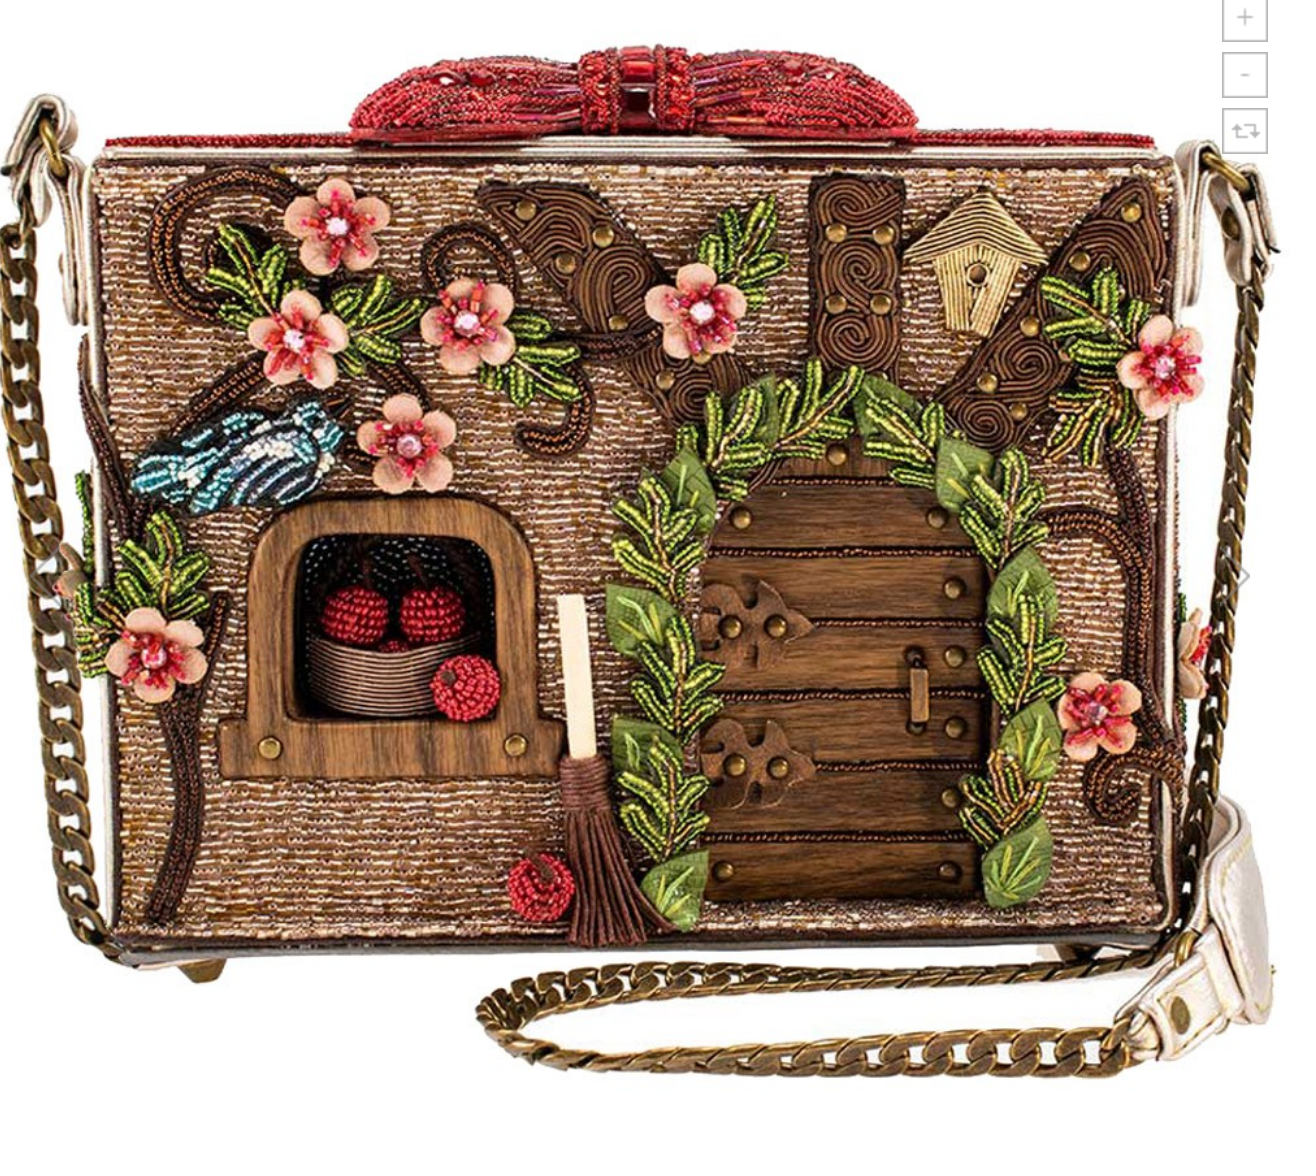 Mary Frances Mary Frances - Charmed Cottage Handbag